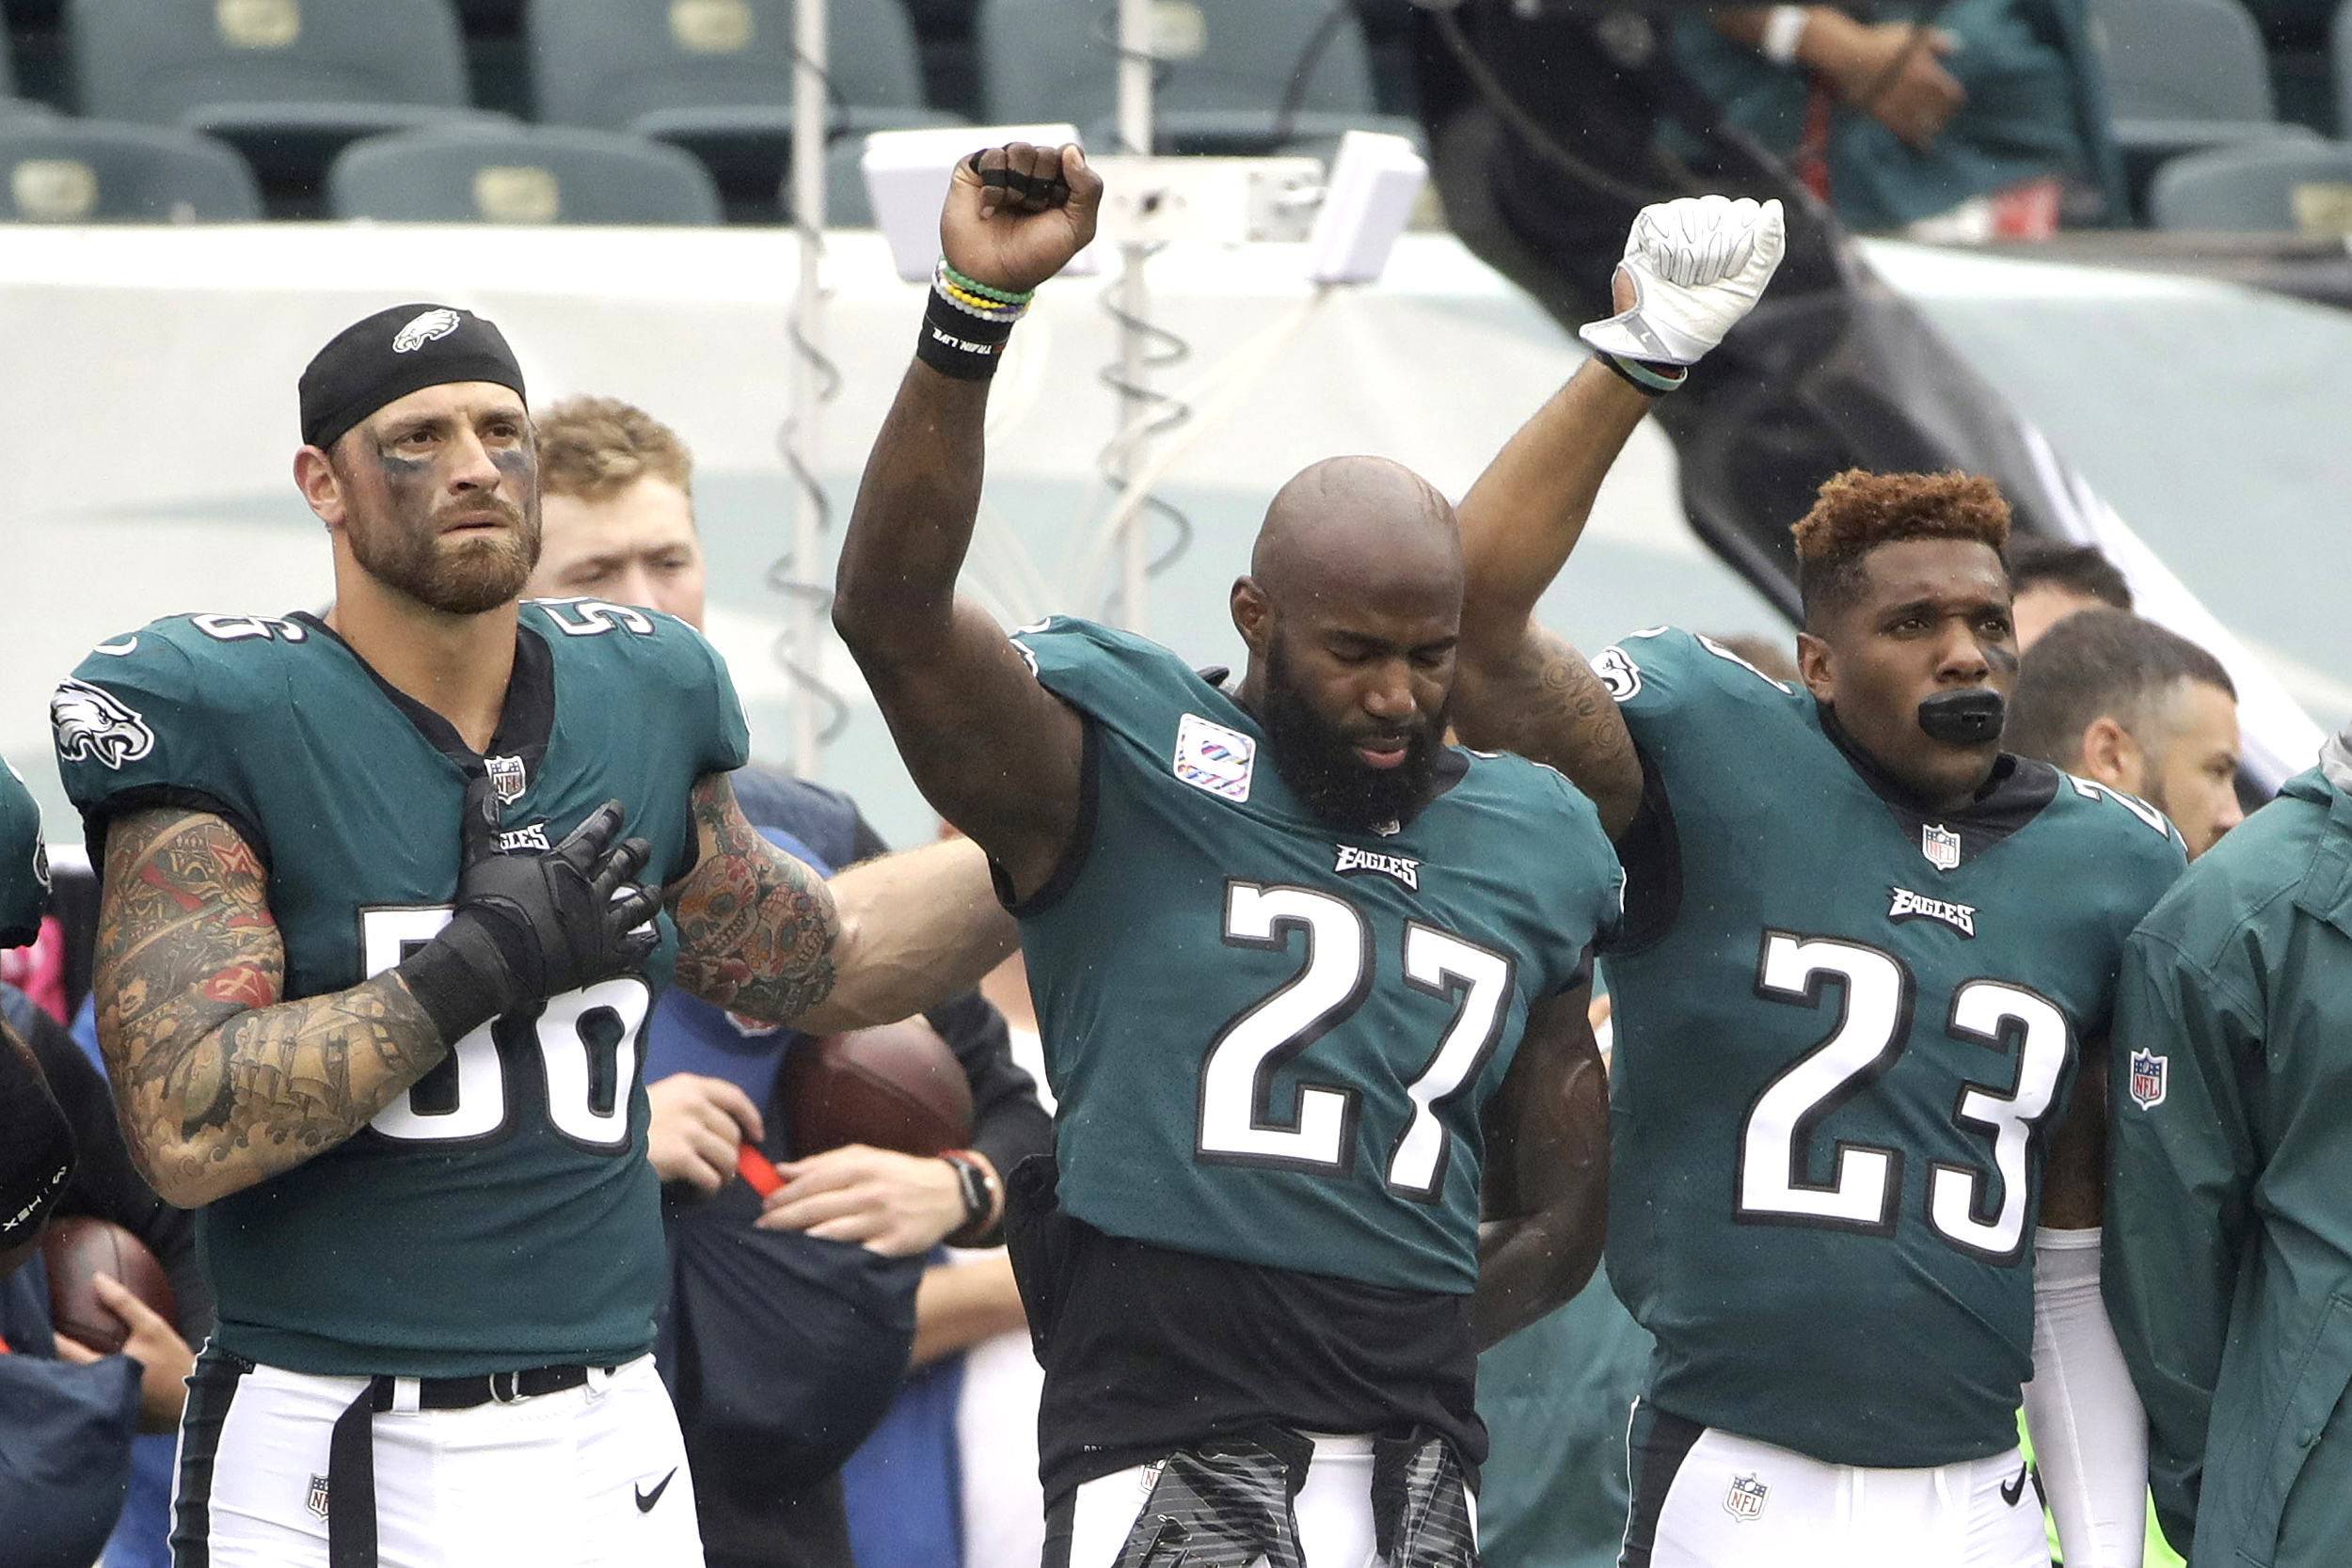 Maggie Serota The Philadelphia Eagles are America s football team now. And  Trump s feud with them proves it. 116ecb91f